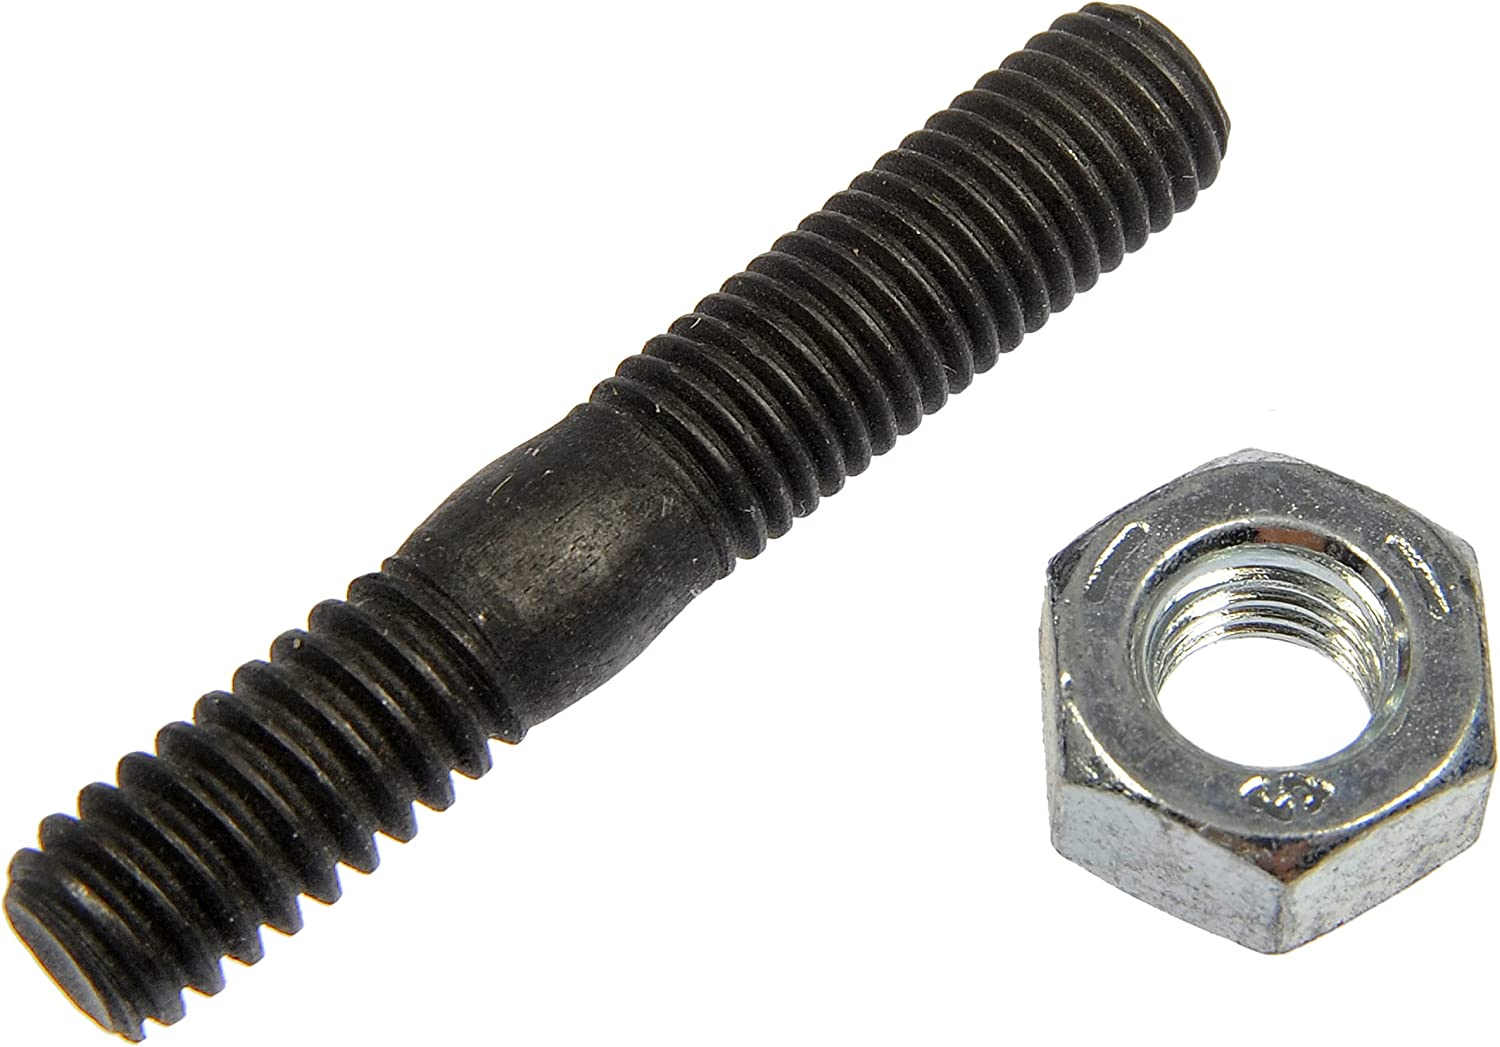 Dorman 675-521 Double Ended Stud - 5 2 X In. 16-18 1 年間定番 人気ブレゼント 16-24 x